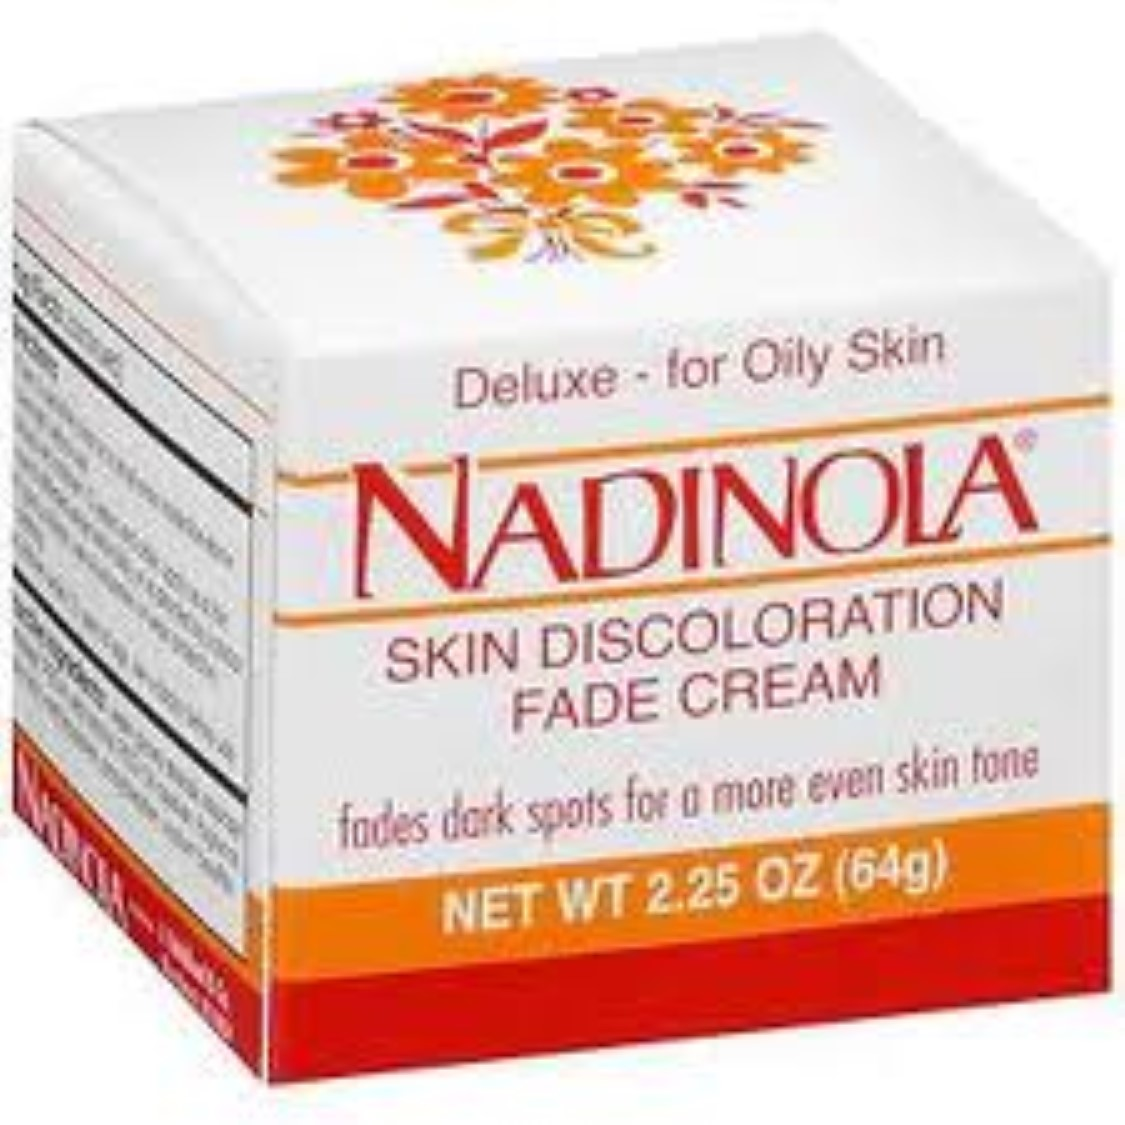 Nadinola Deluxe Skin Discoloration Fade Cream for Oily Skin, 2.25 oz